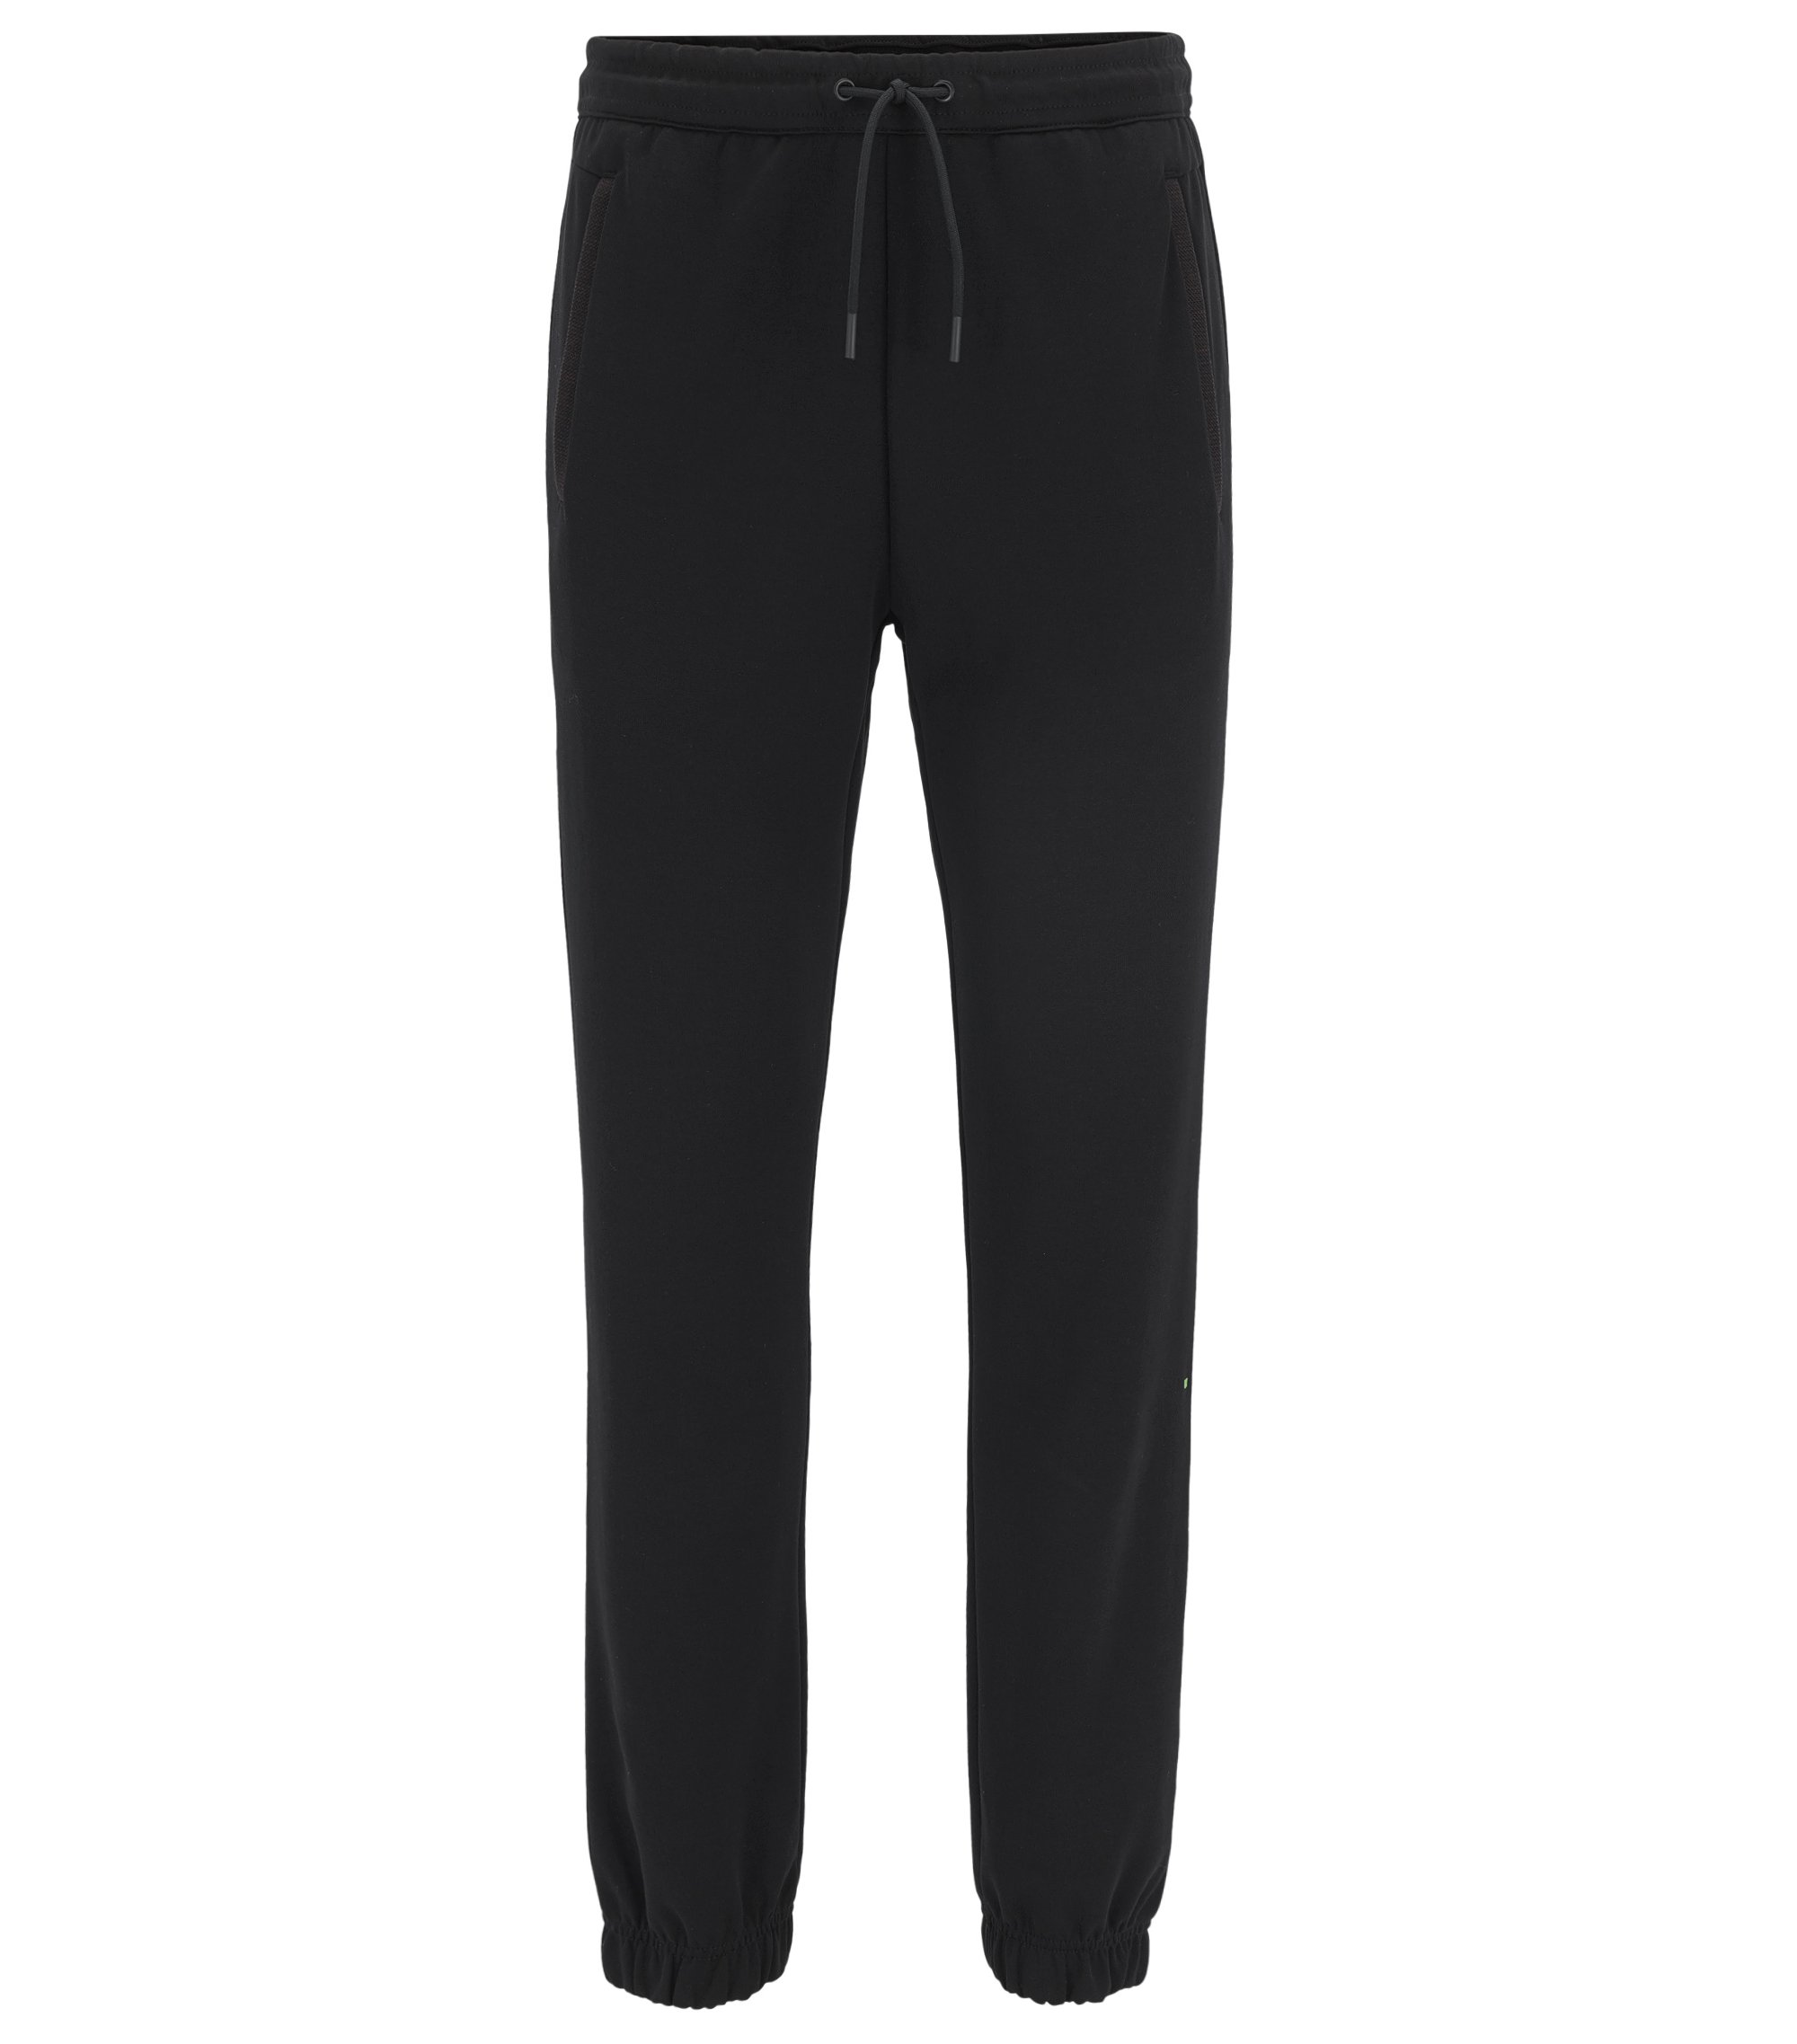 Cotton Blend Melange Sweatpant | Hadiko US, Black